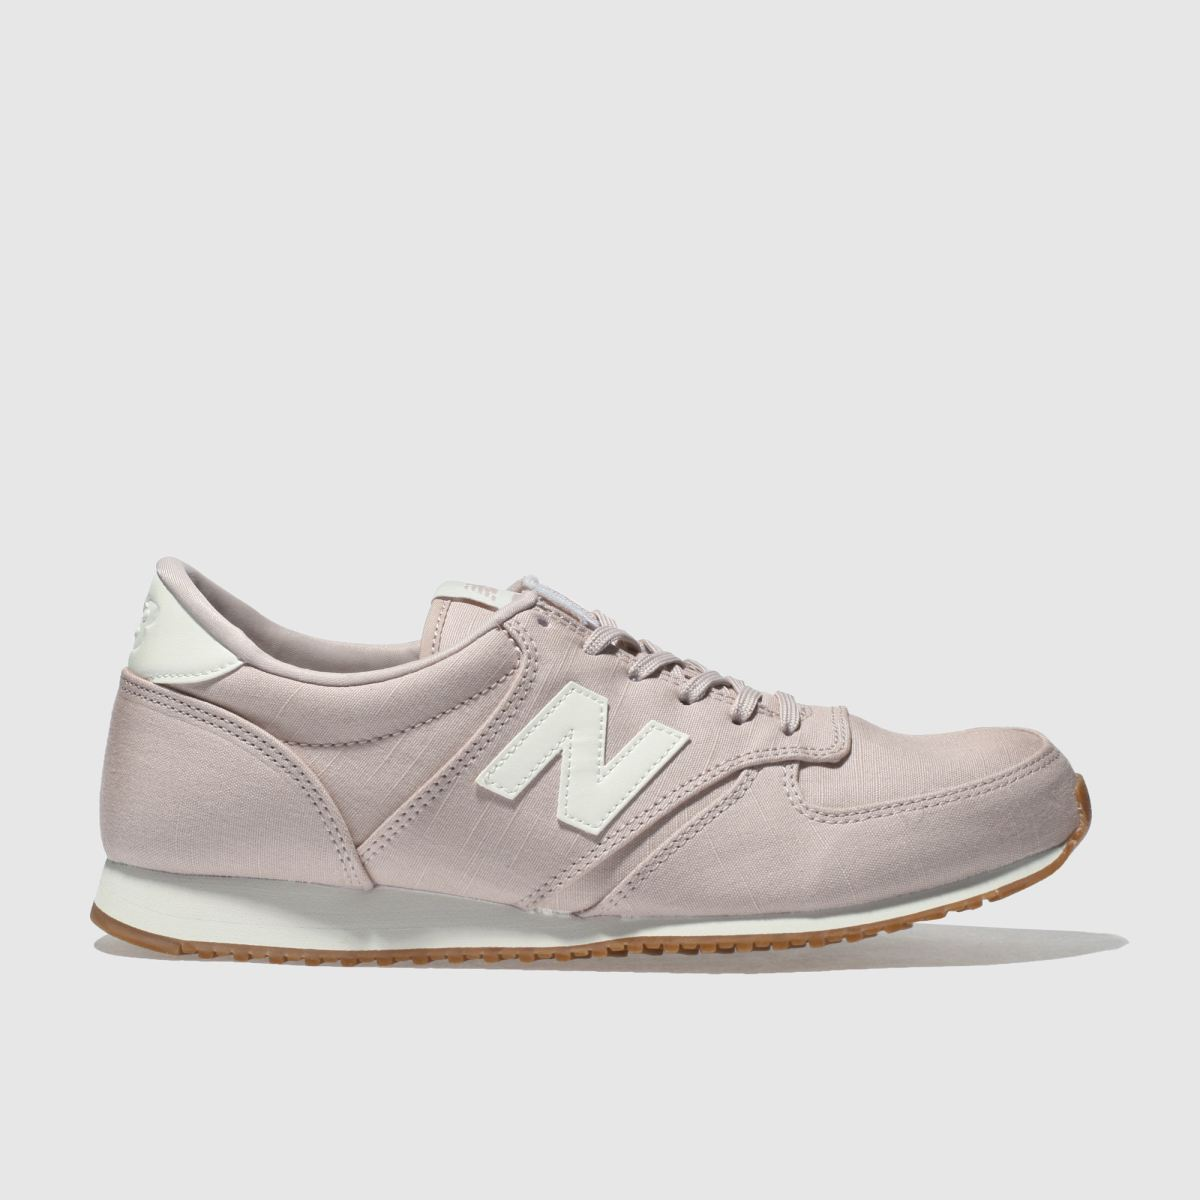 New Balance Pale Pink 420 V1 Canvas Trainers